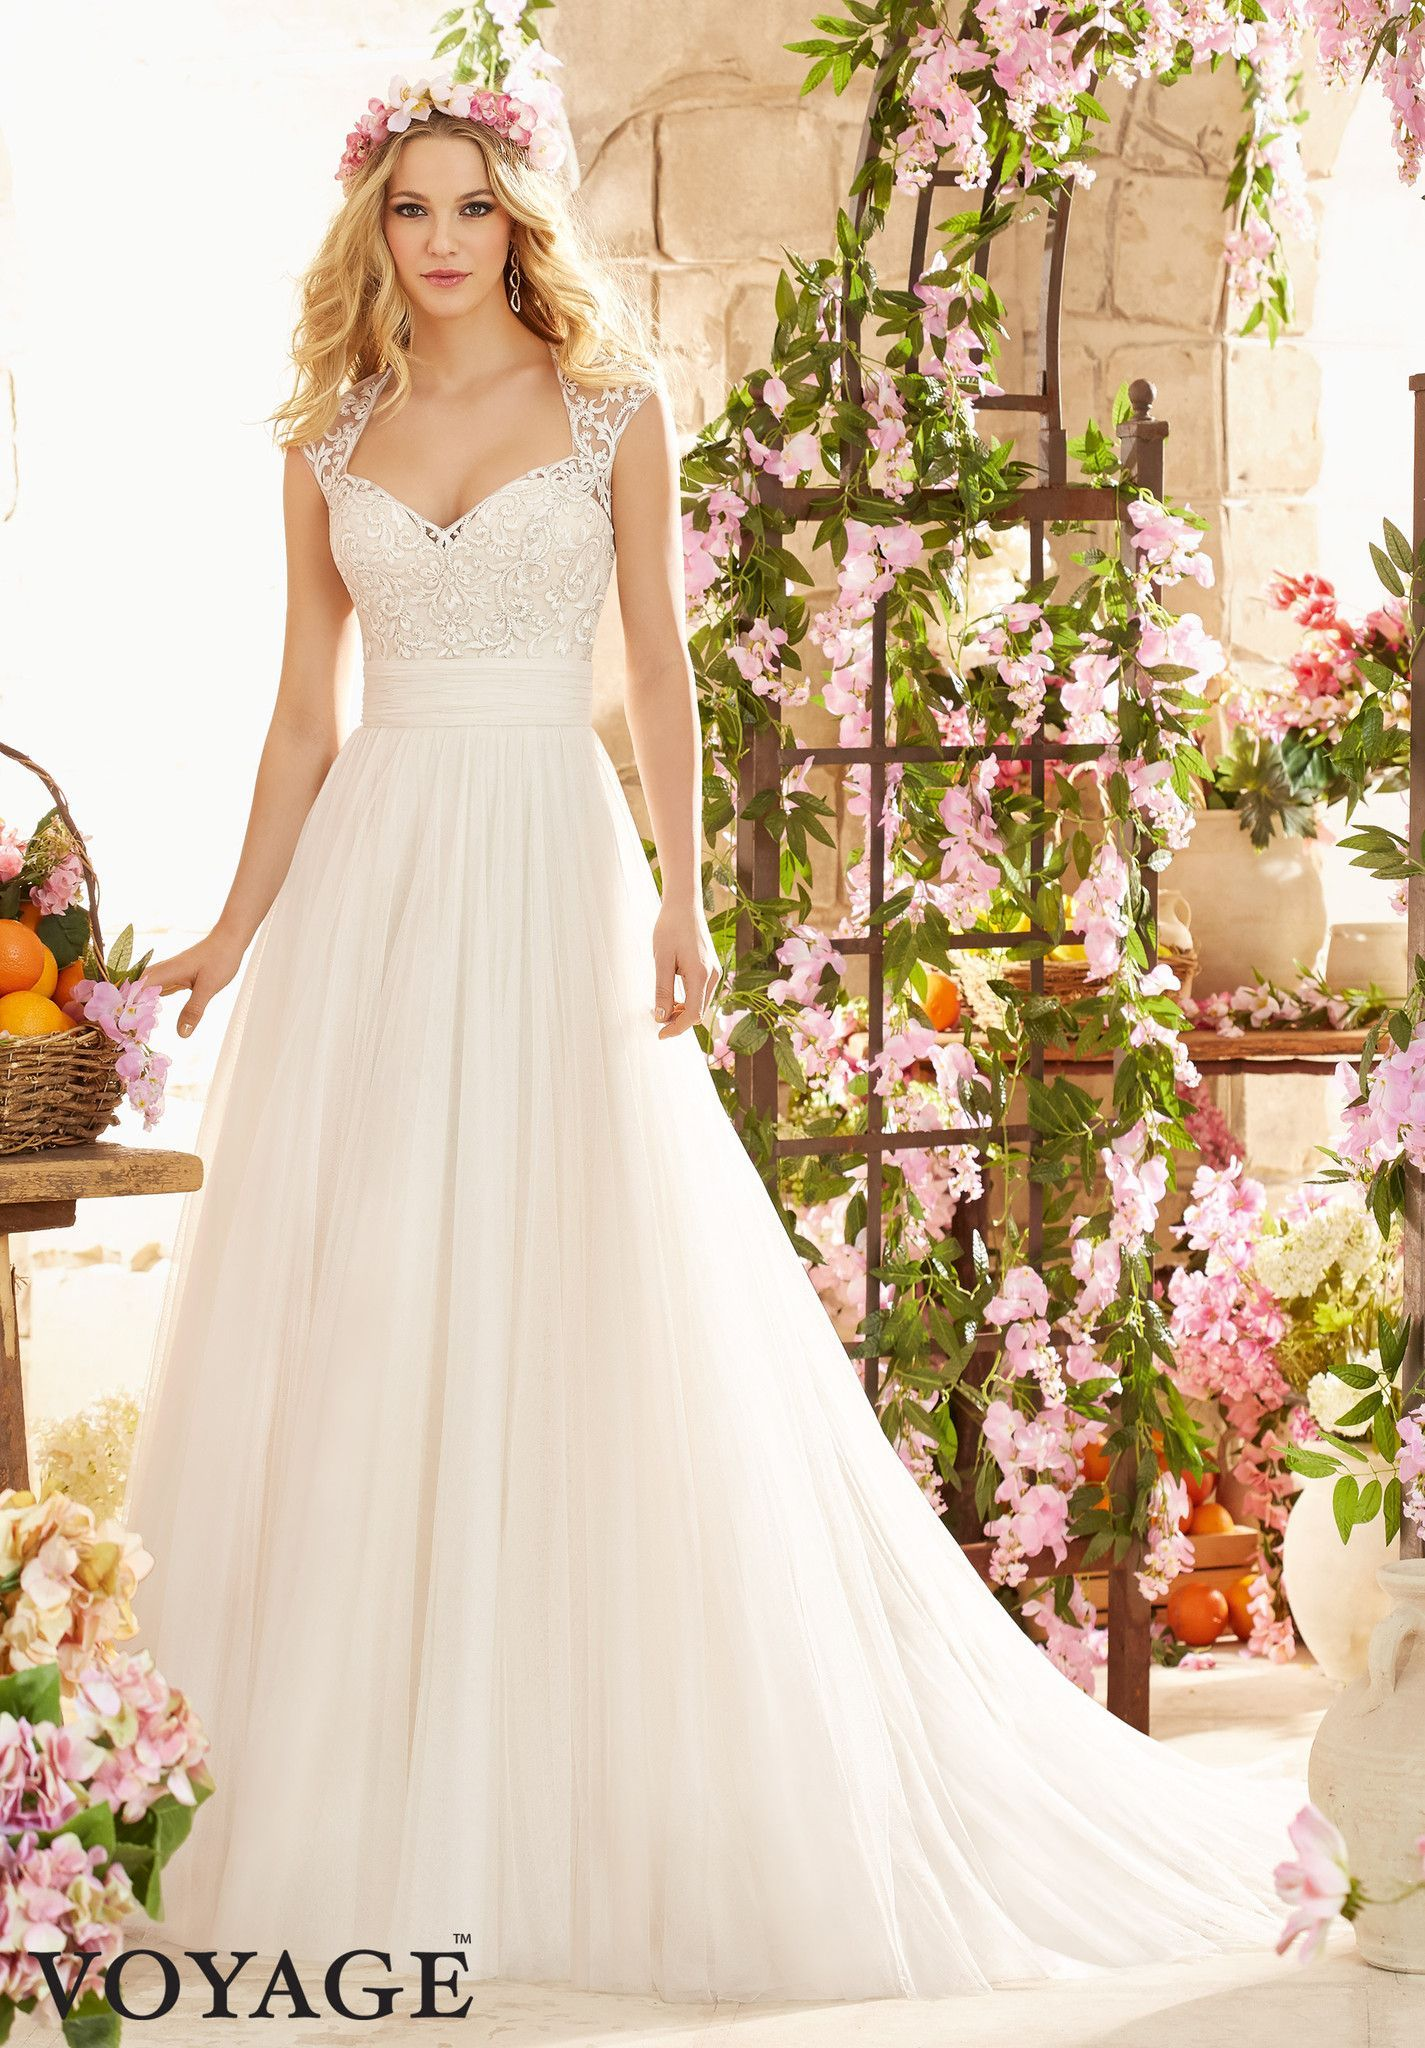 Voyage all dressed up bridal gown wedding dress